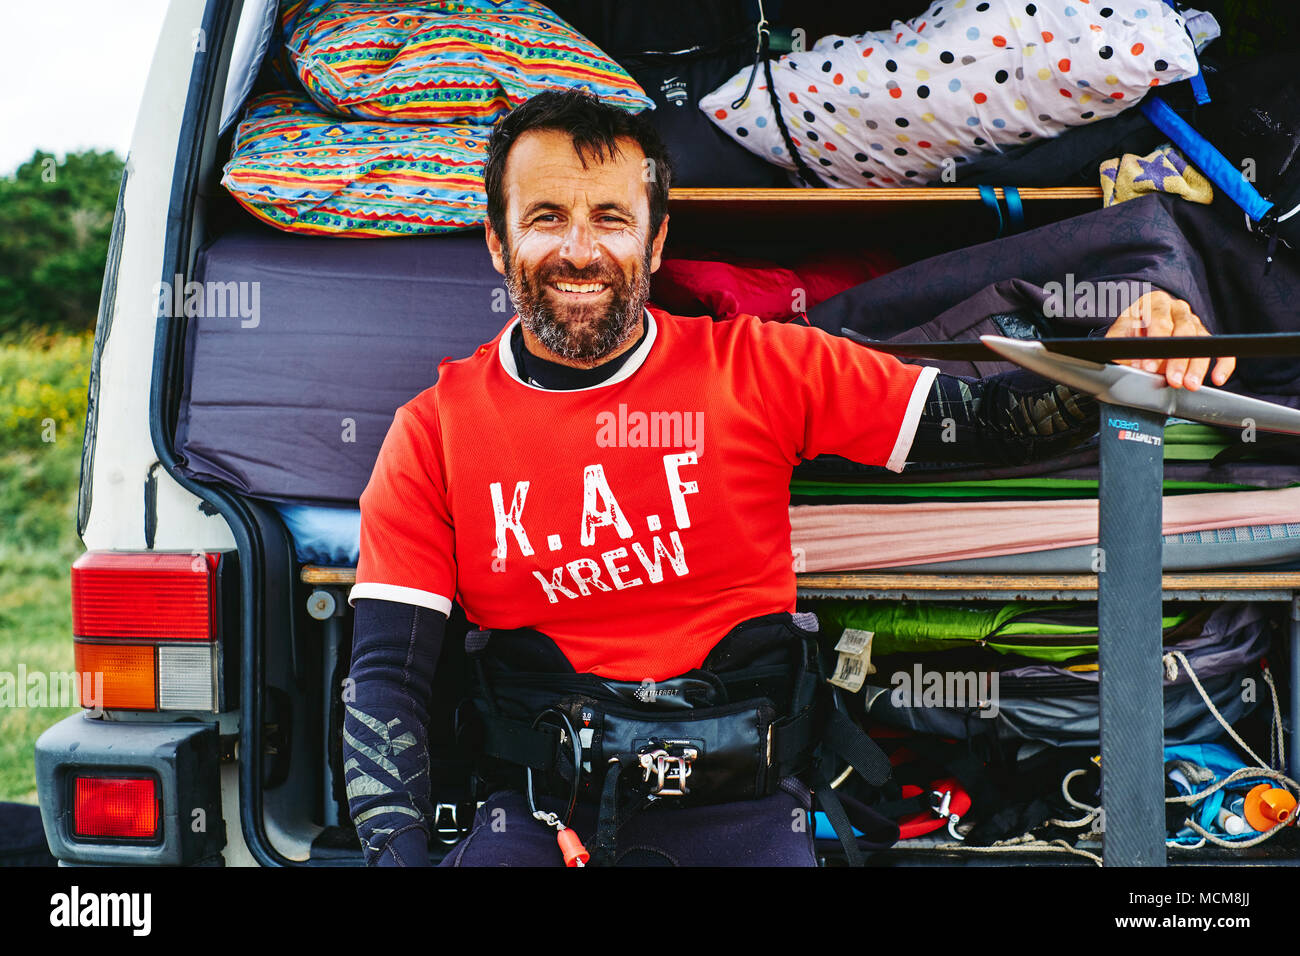 A lifestyle portrait of a kite surfer sitting outside his camper van - Stock Image